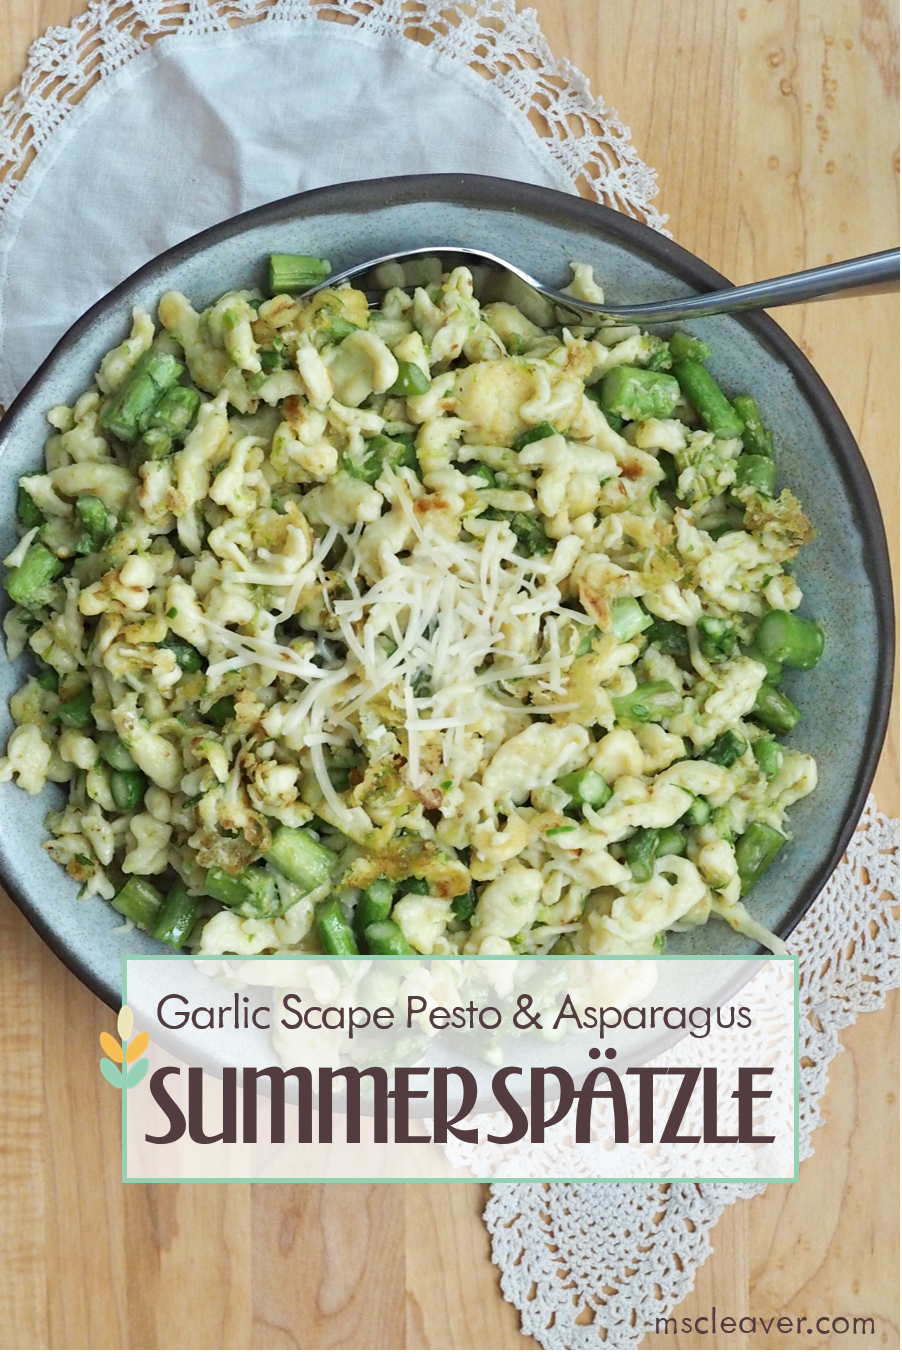 Summer Spaetzle Recipe 2.png